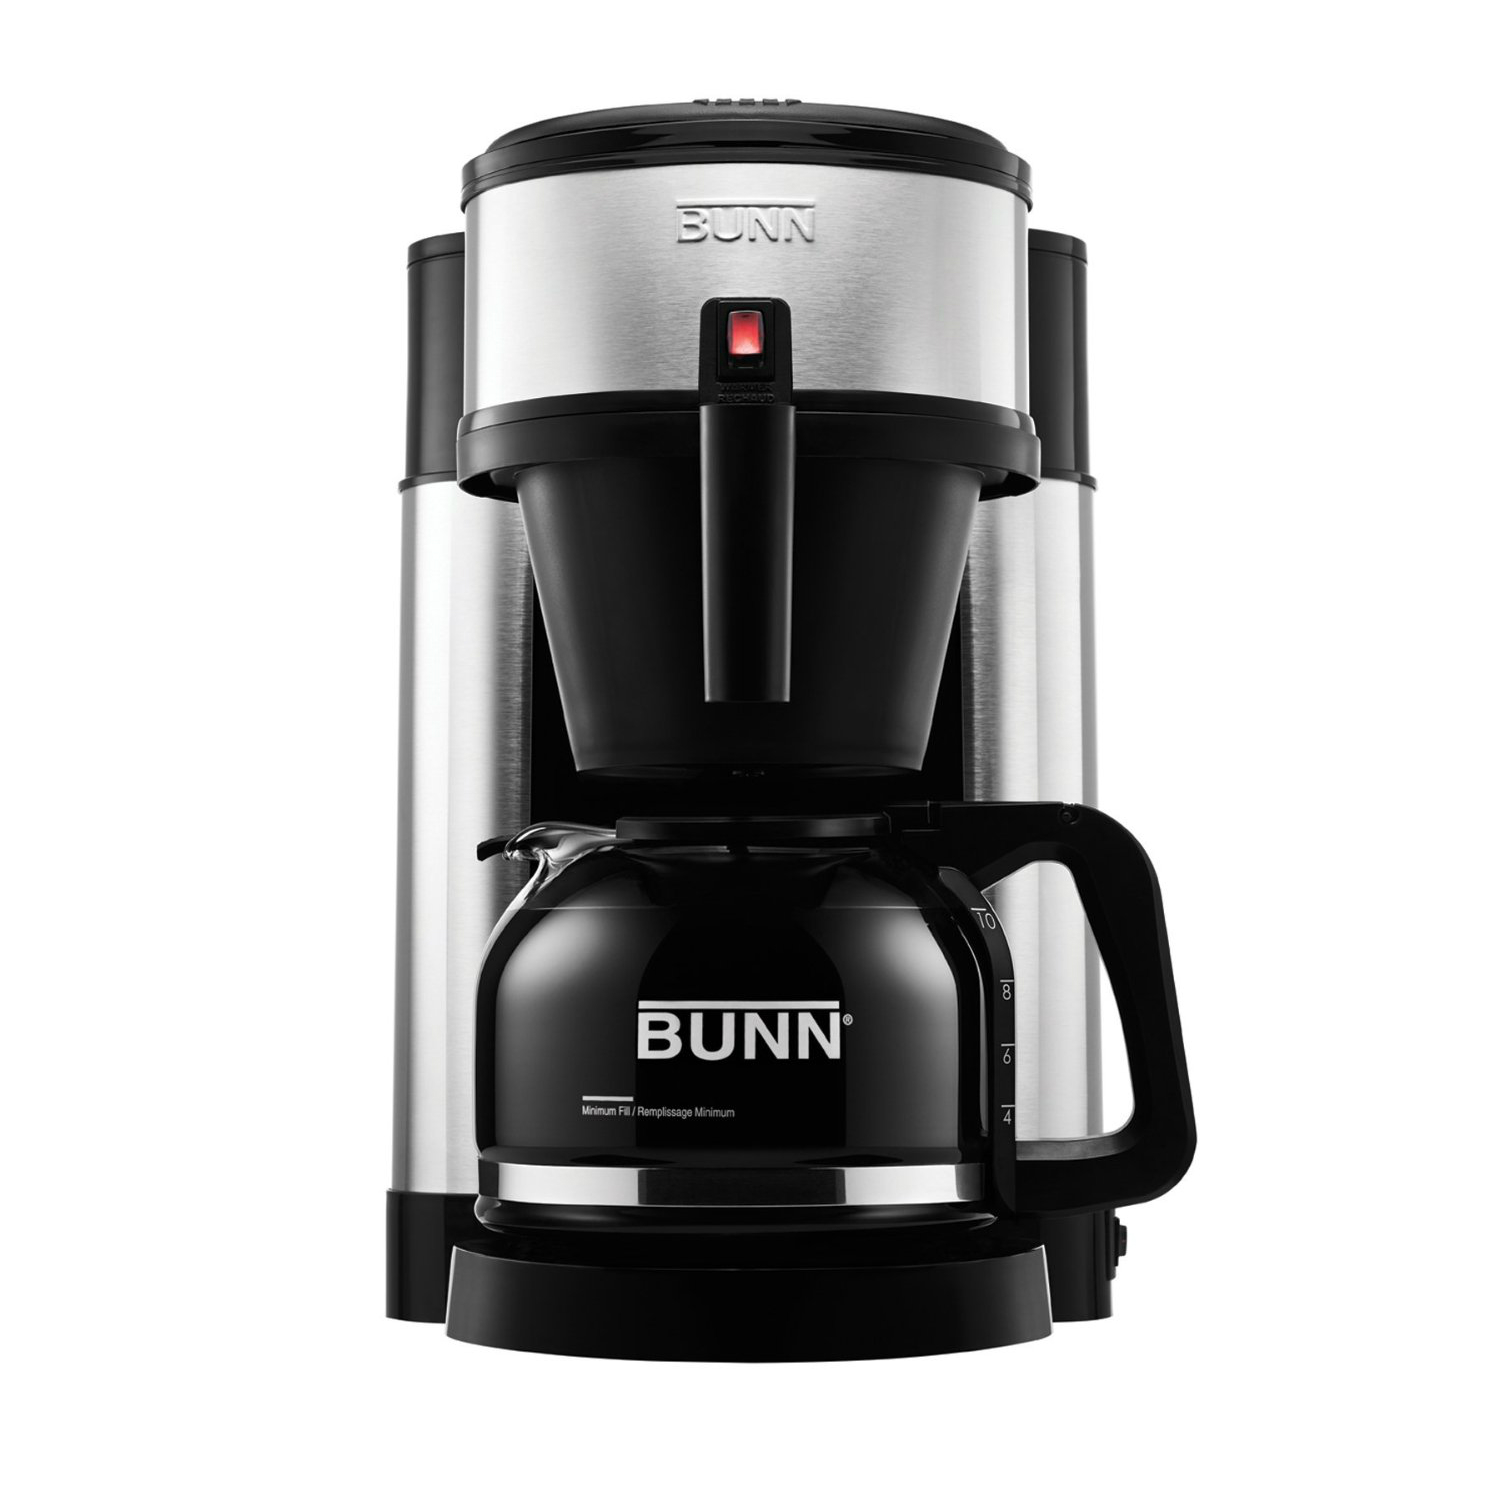 Bunn Coffee Maker Dealers : Bunn NHS 10 Cup Velocity Brew Coffee Maker Black and Stainless Brewer 72504111445 eBay